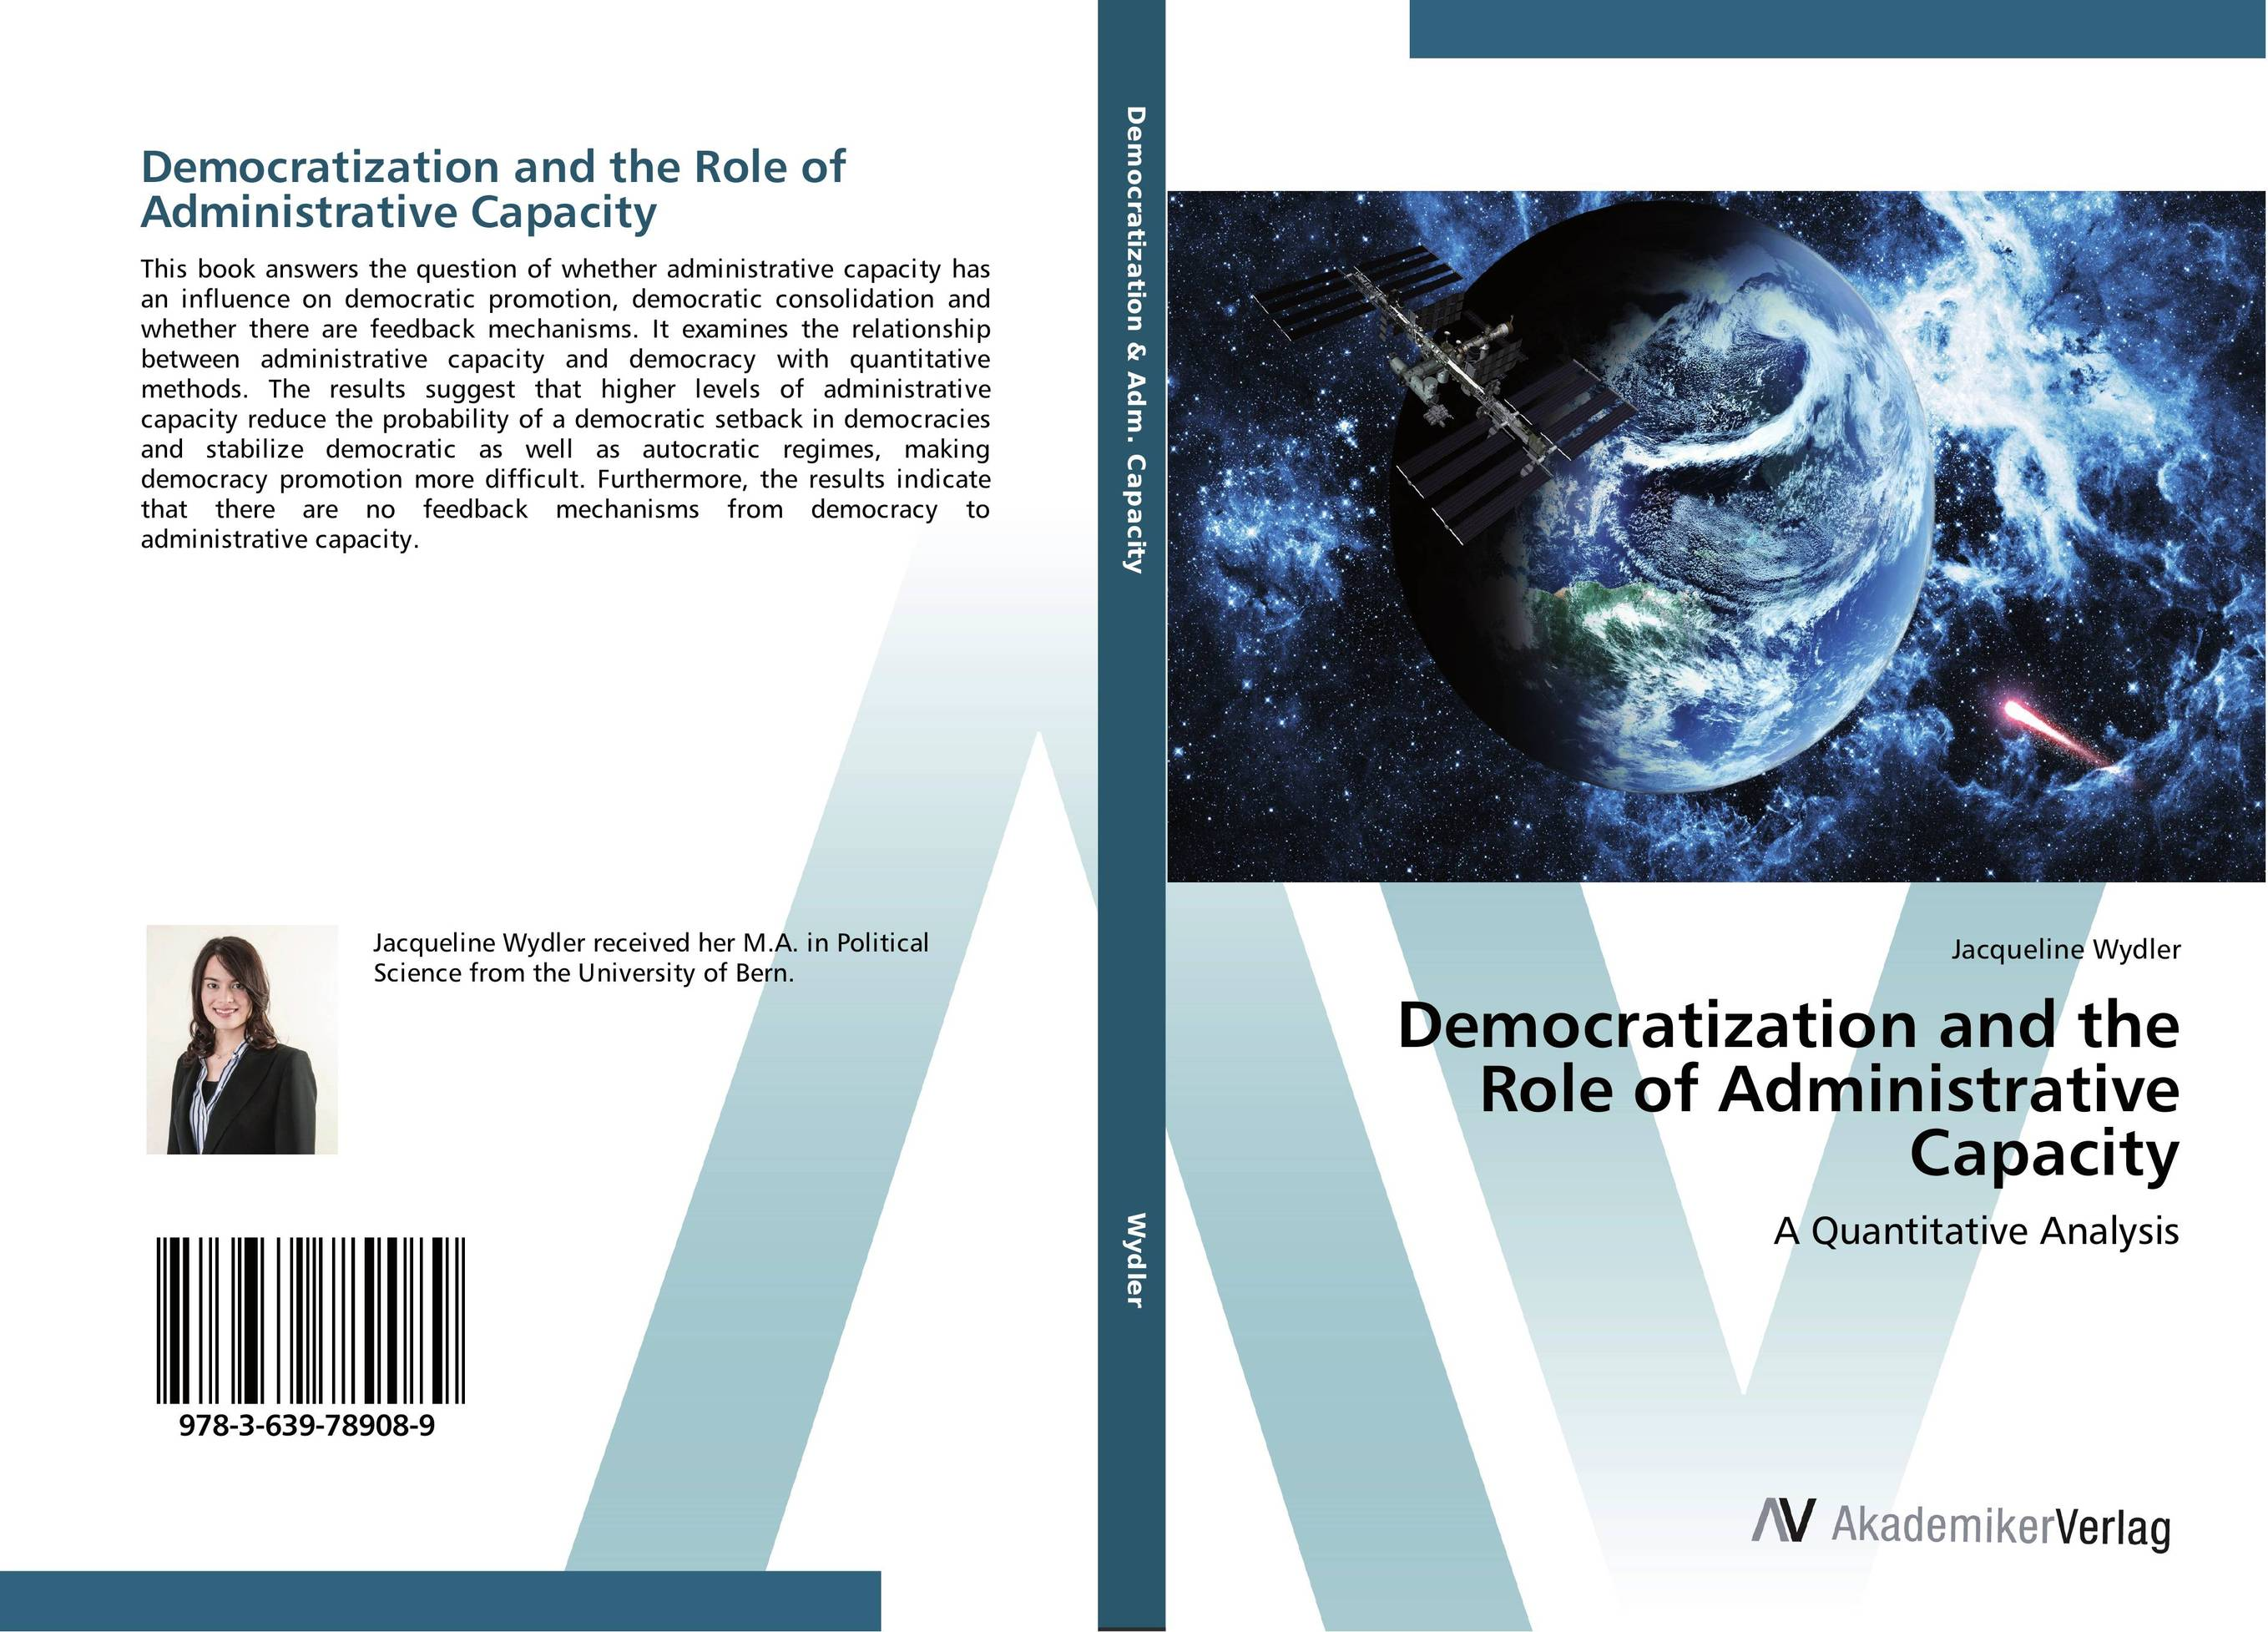 Democratization and the Role of Administrative Capacity the breakdown of democratic regimes